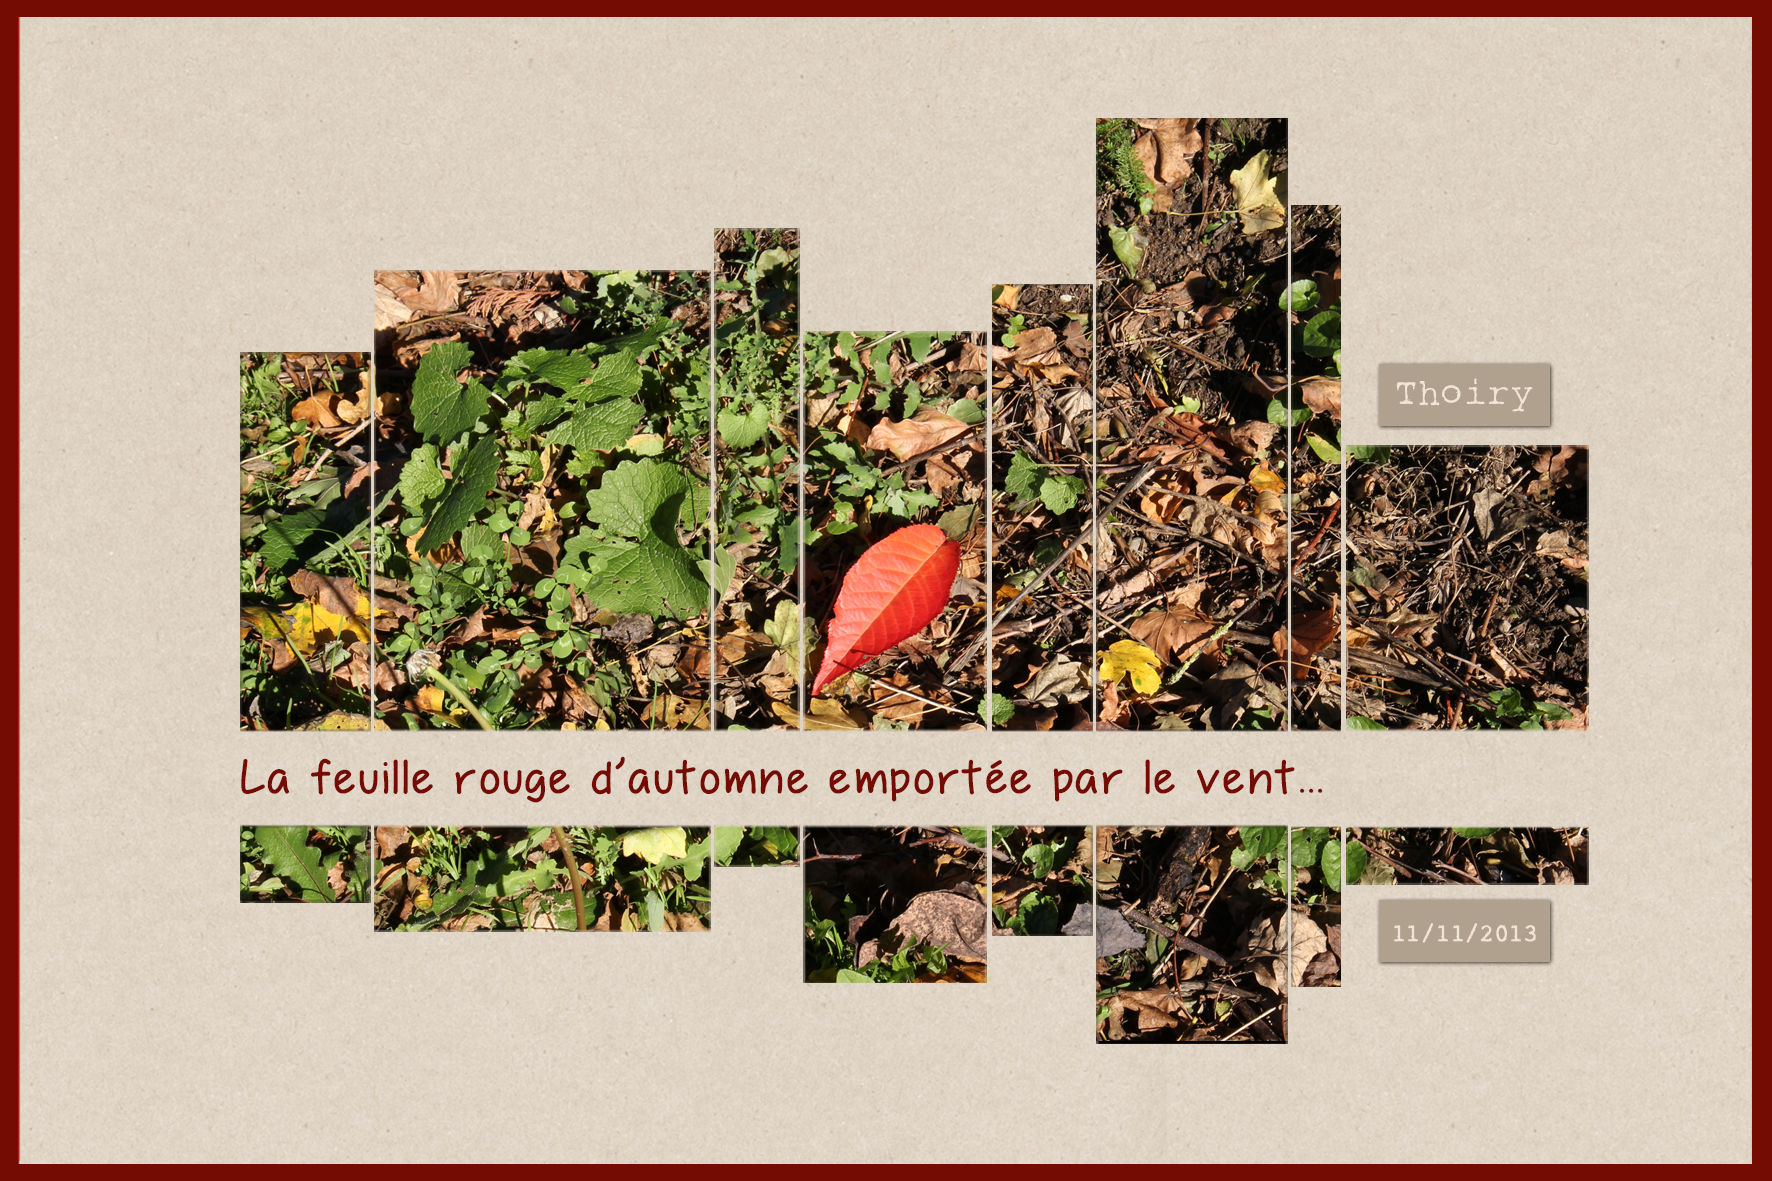 automne_feuille rouge